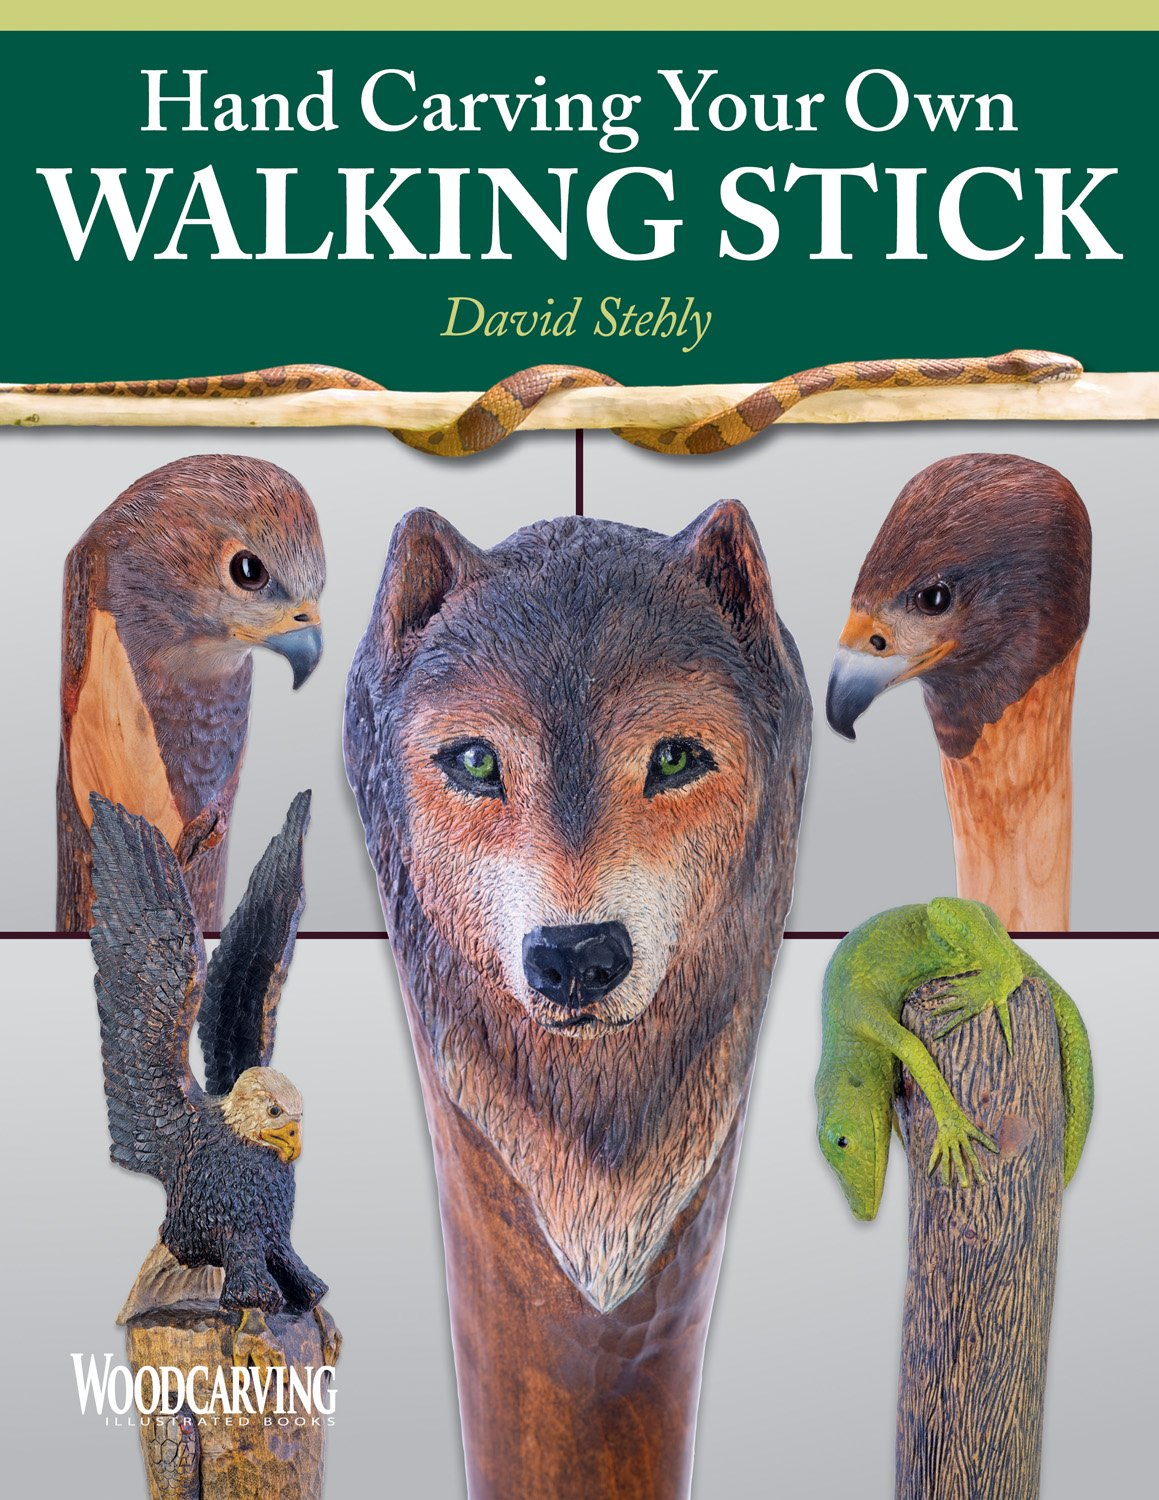 Hand Carving Your Own Walking Stick: An Art Form (Fox Chapel Publishing) Step-by-Step Instructions to Make Artisan-Quality Sticks, Canes, Staffs (Staves), Including Realistic Snakes & Finishing